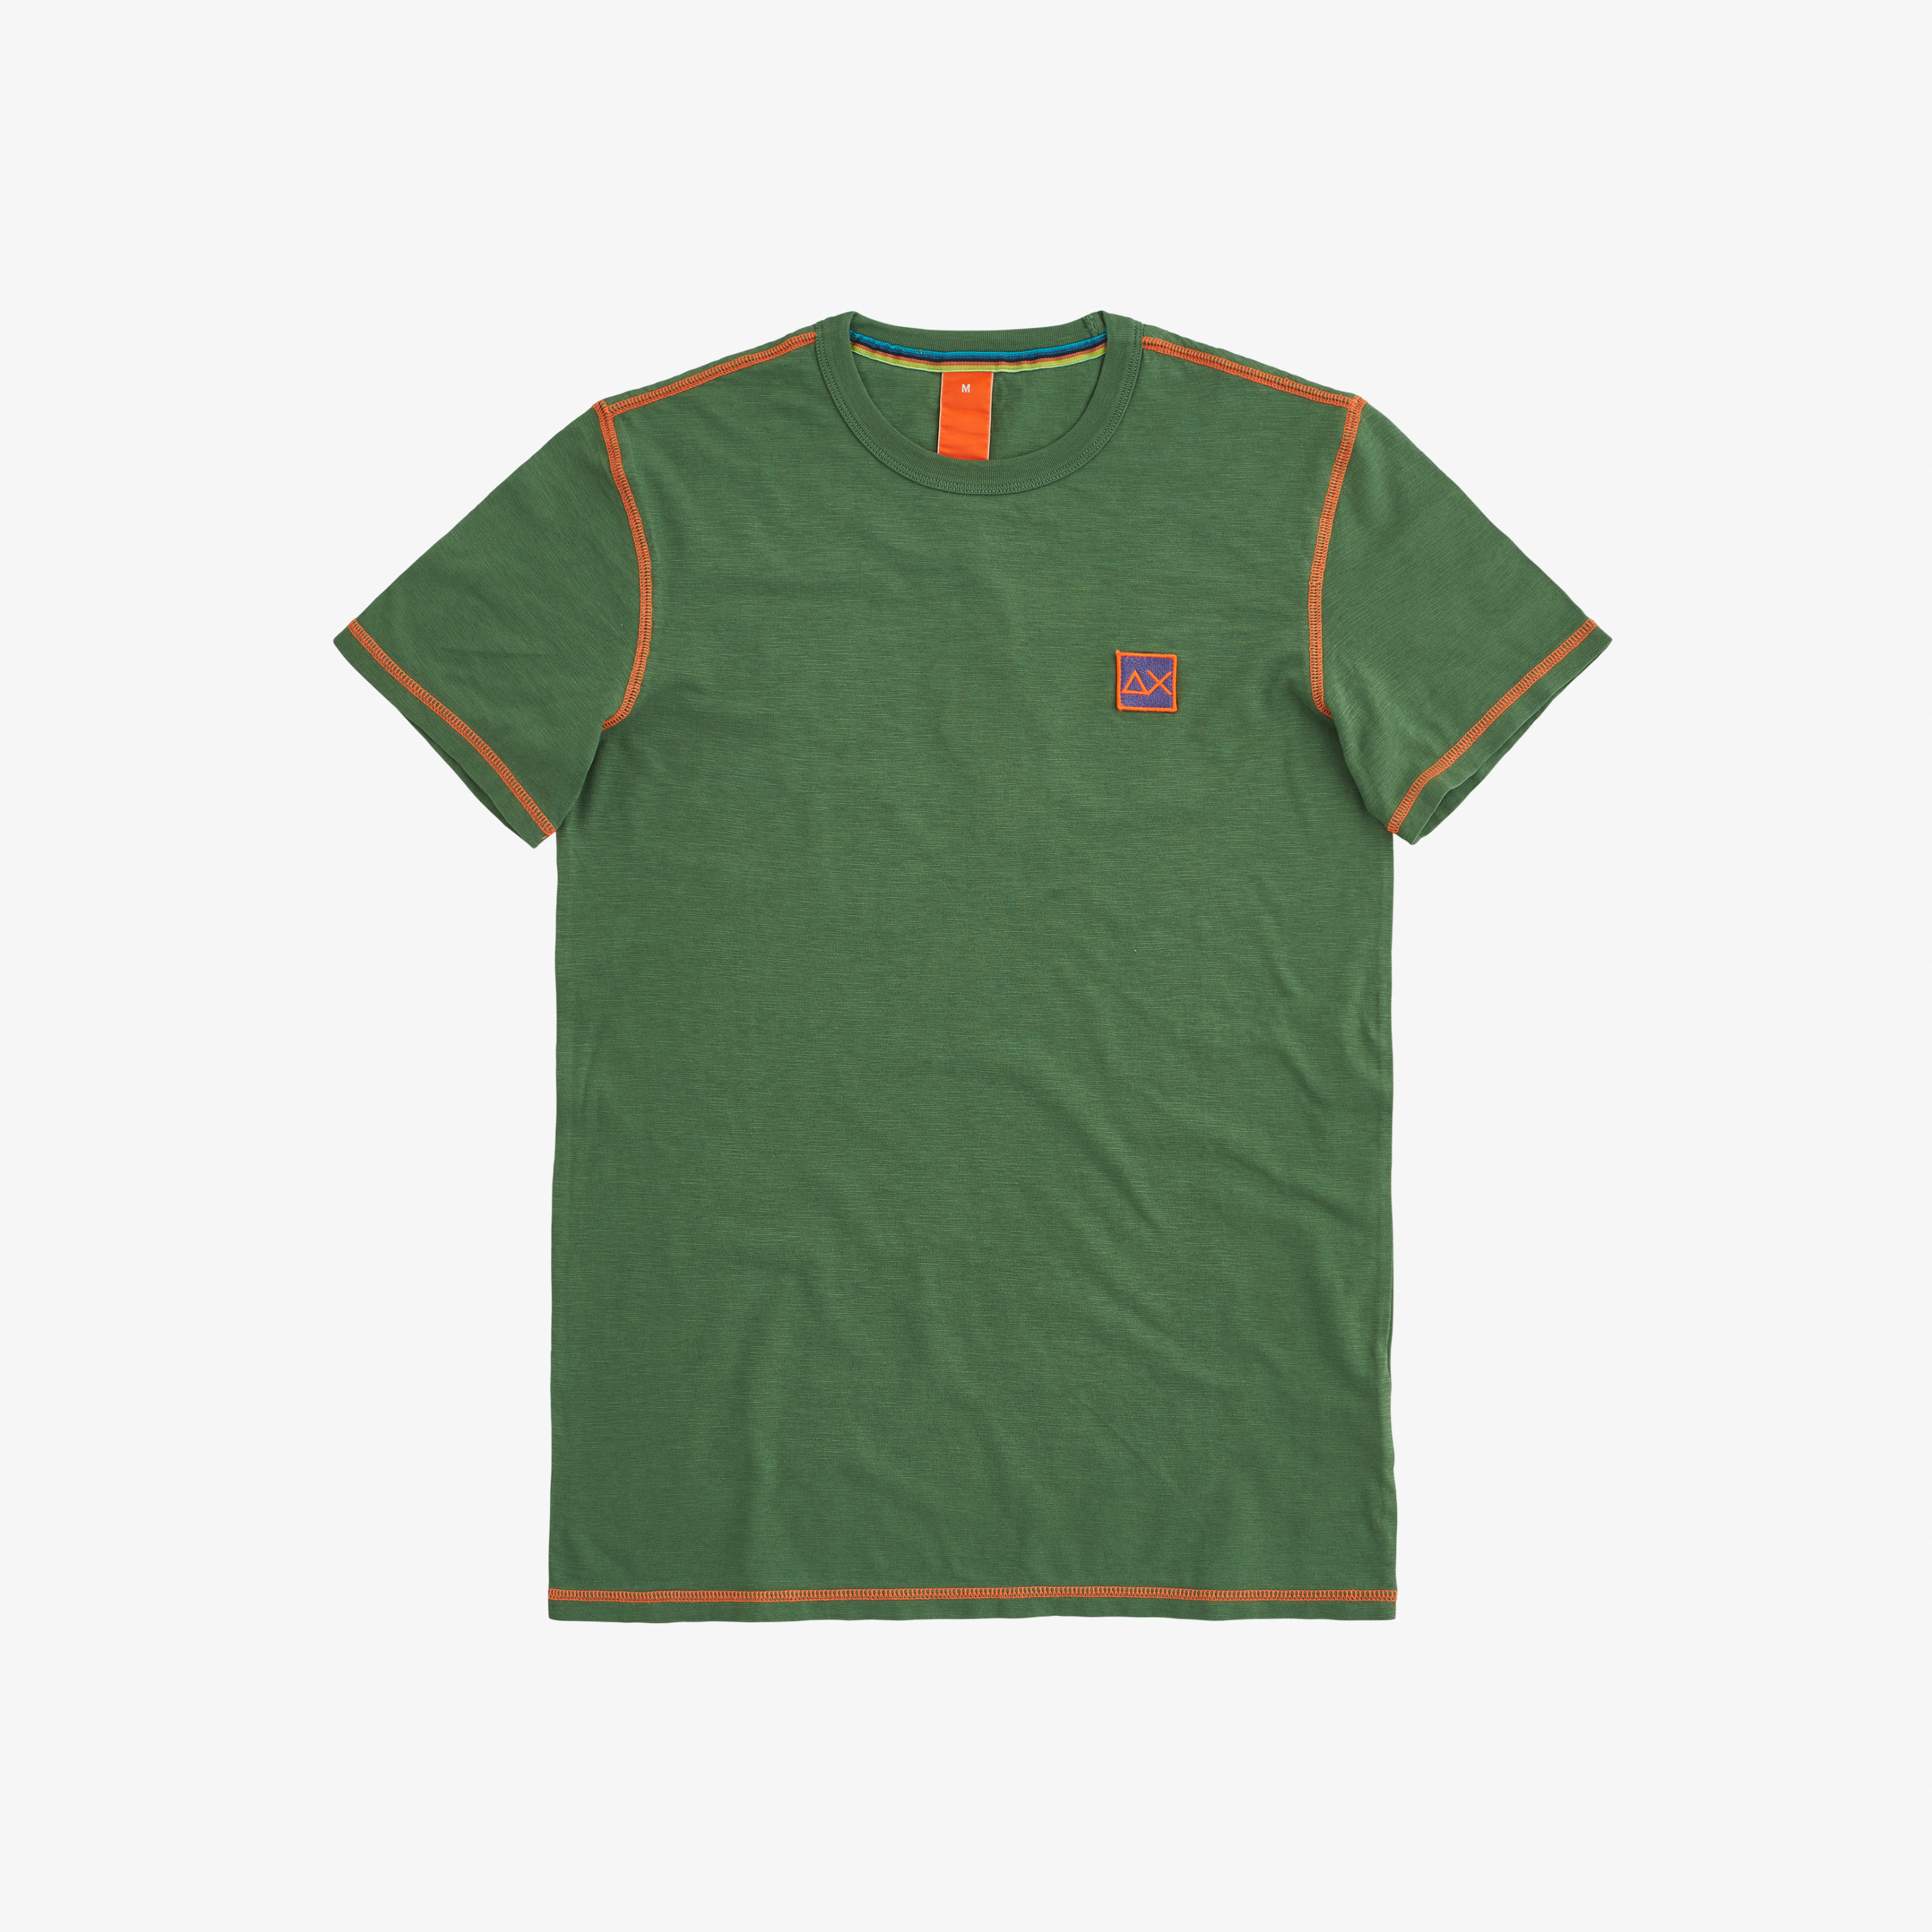 T-SHIRT COLD DYE CONTRAST STITCHING SAGE GREEN